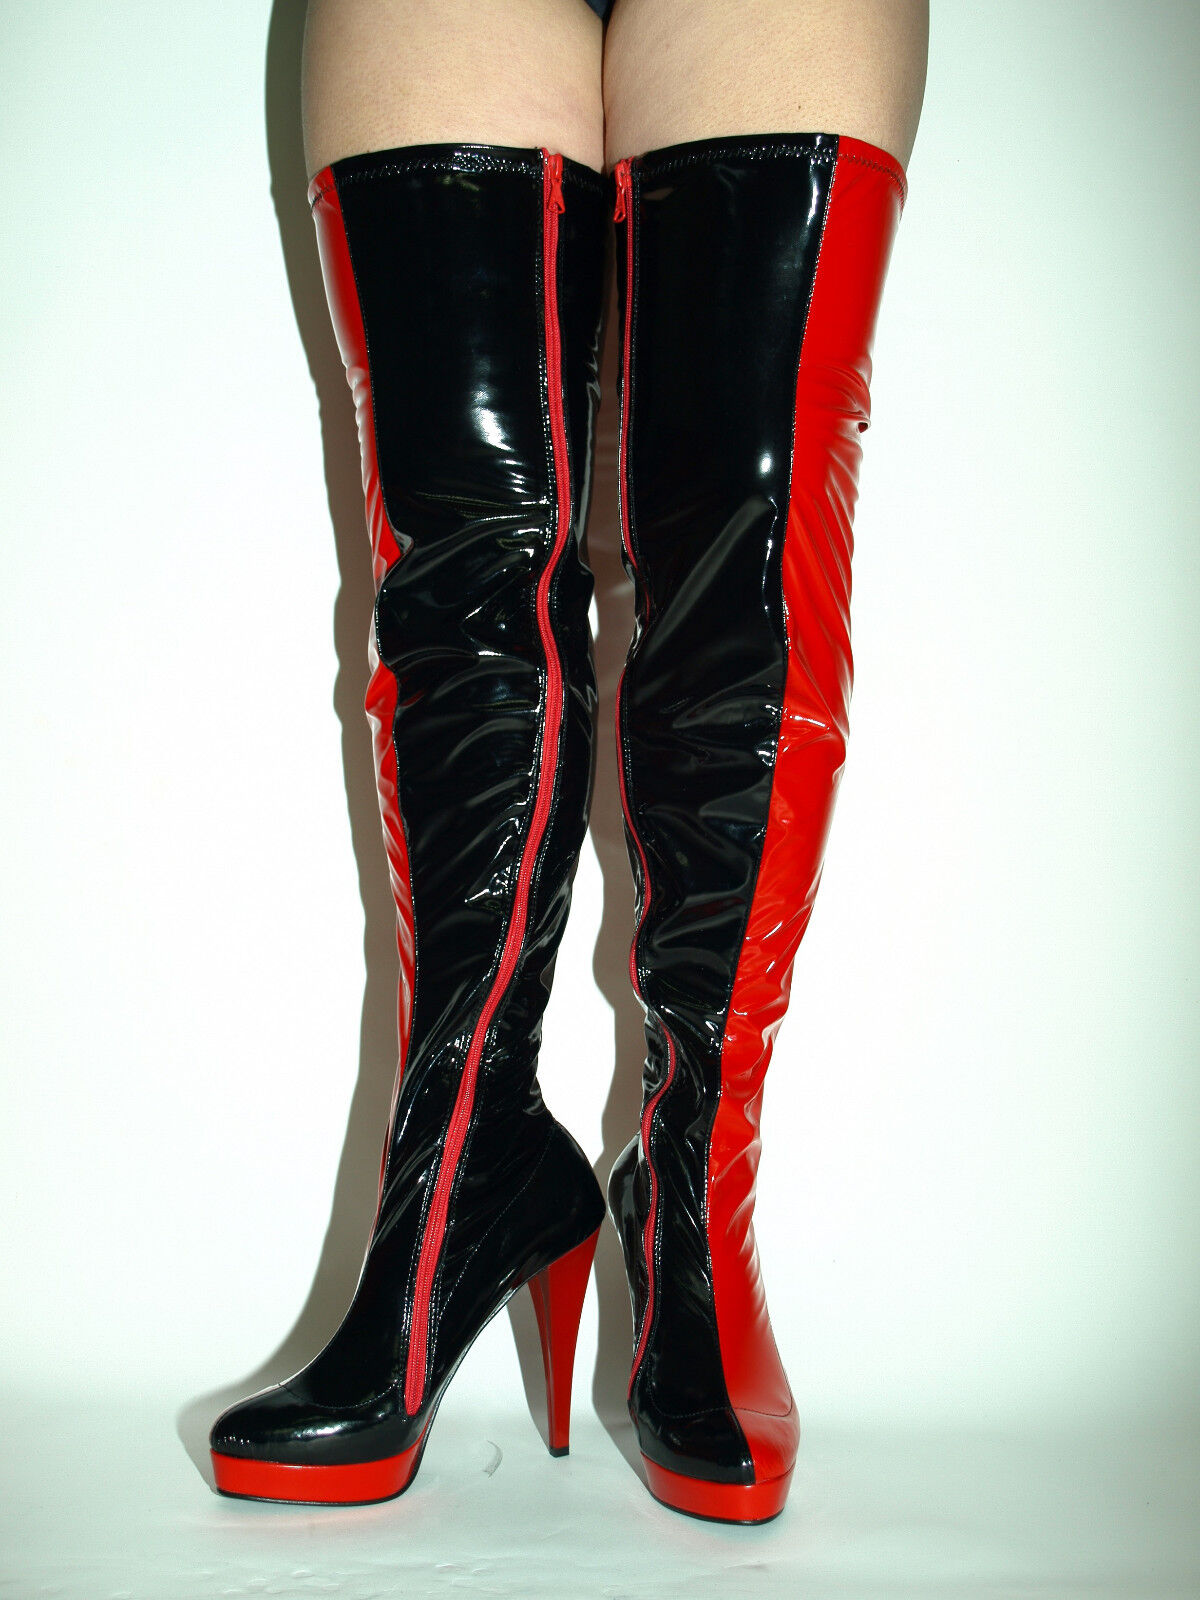 HIGH BOOTS FETISH  BOOTS SIZE 4-12- HEELS 5,5 - 13cm PRODUCER- POLAND